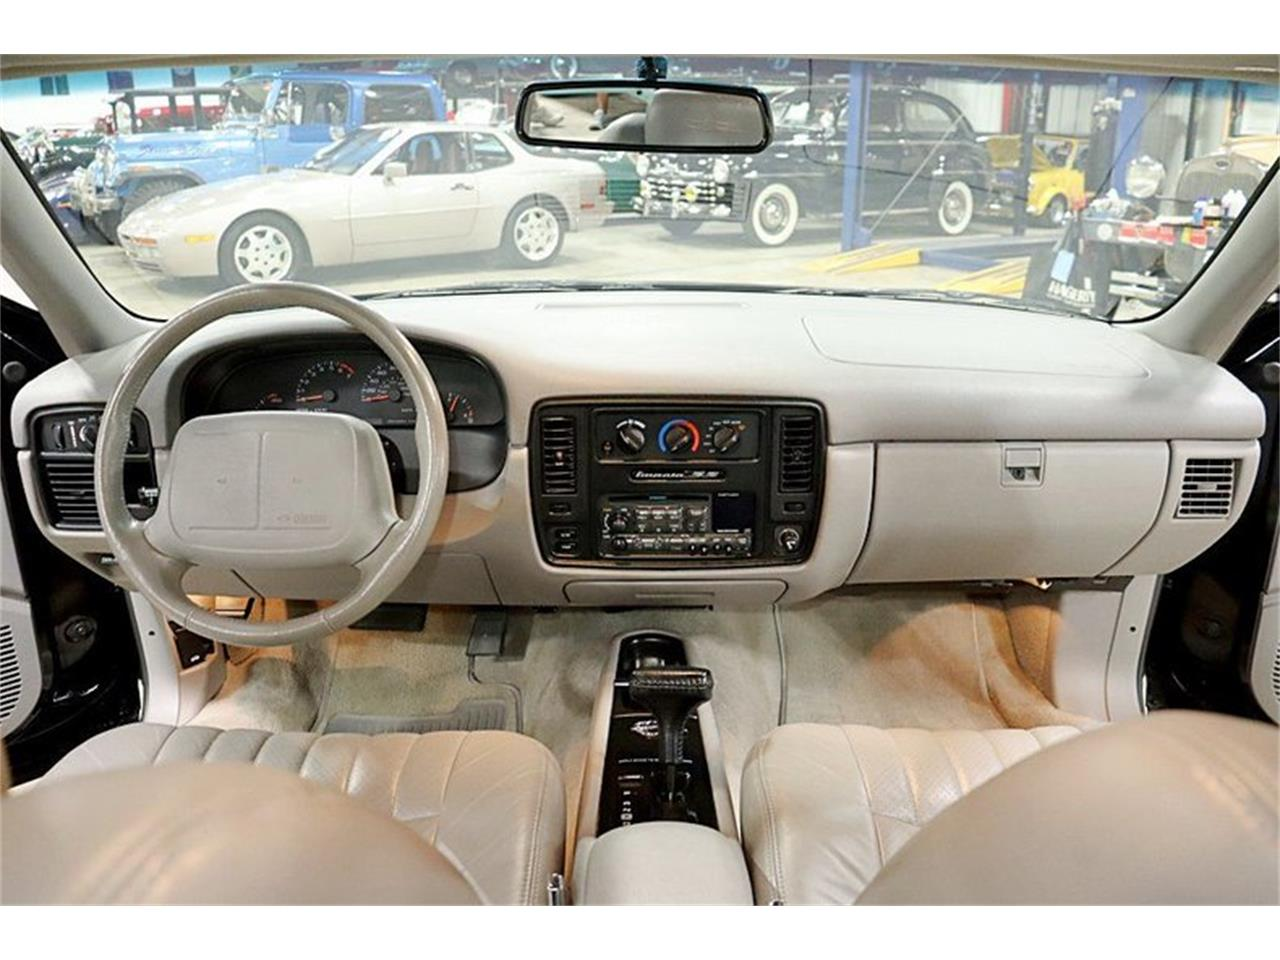 Large Picture of '96 Chevrolet Impala located in Michigan - $16,900.00 - QV81